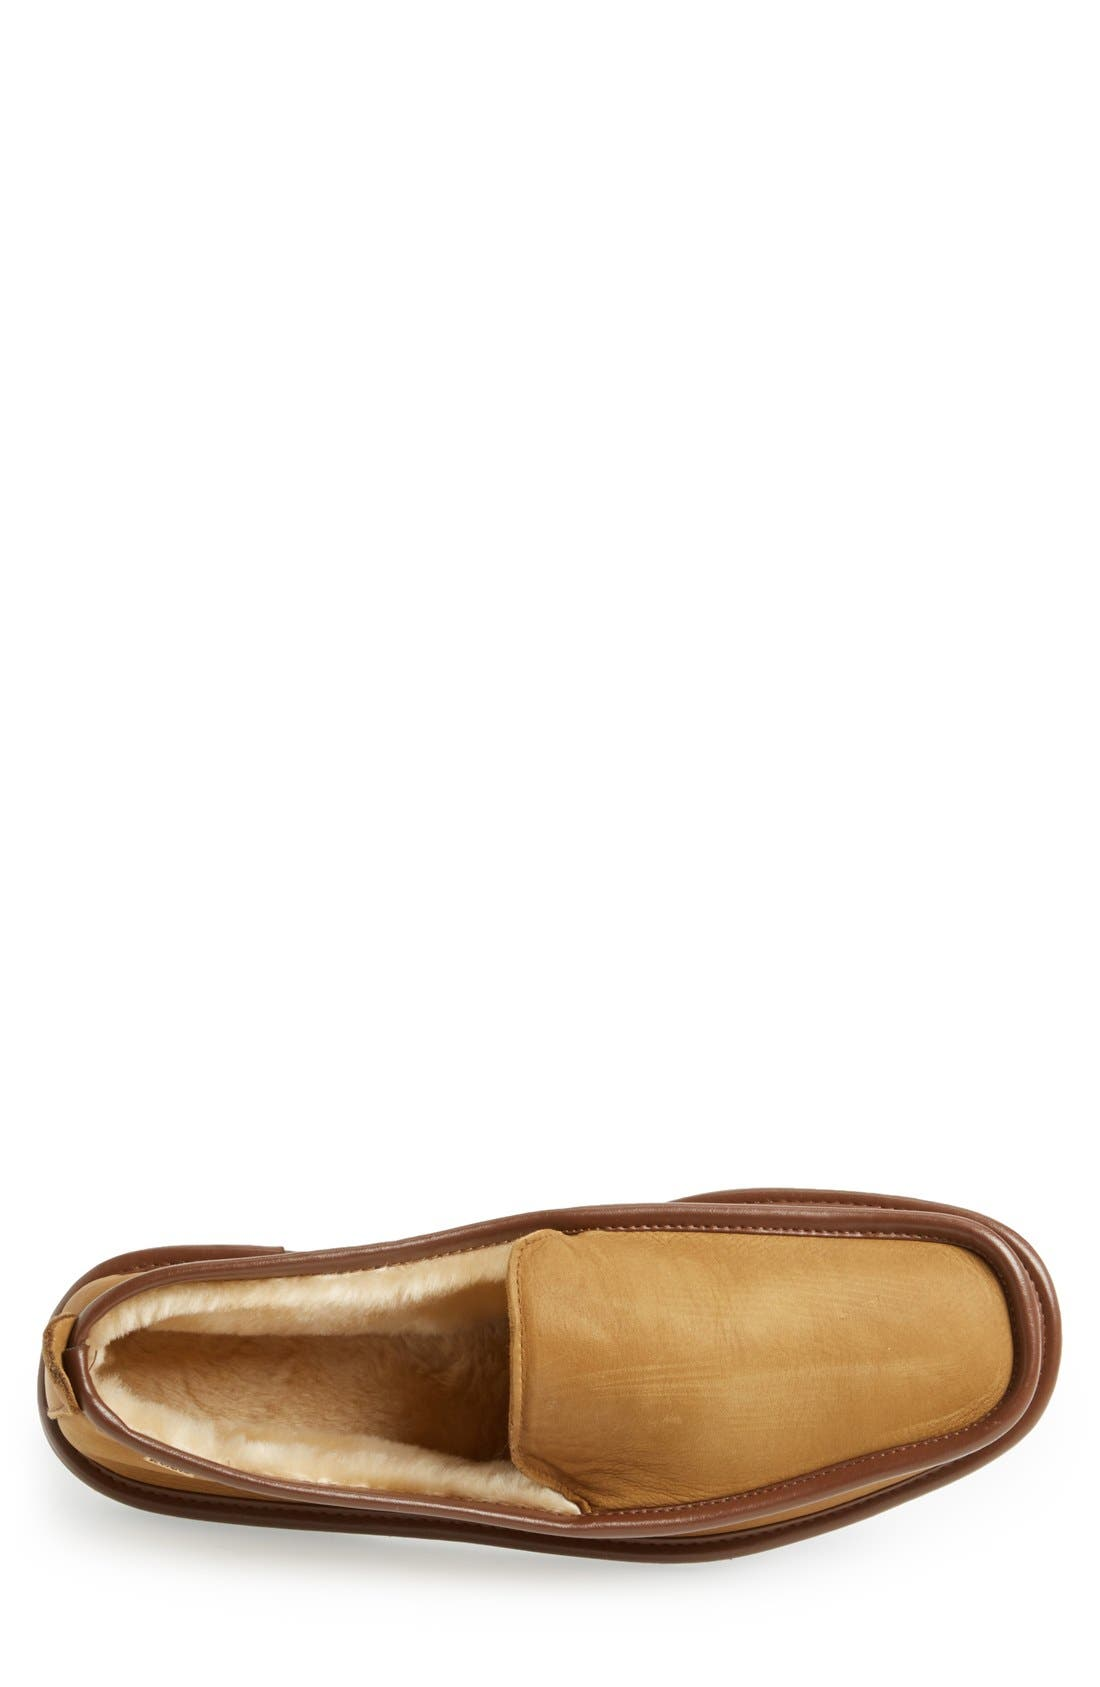 Alternate Image 3  - L.B. Evans 'Imperial Deer' Slipper (Online Only)